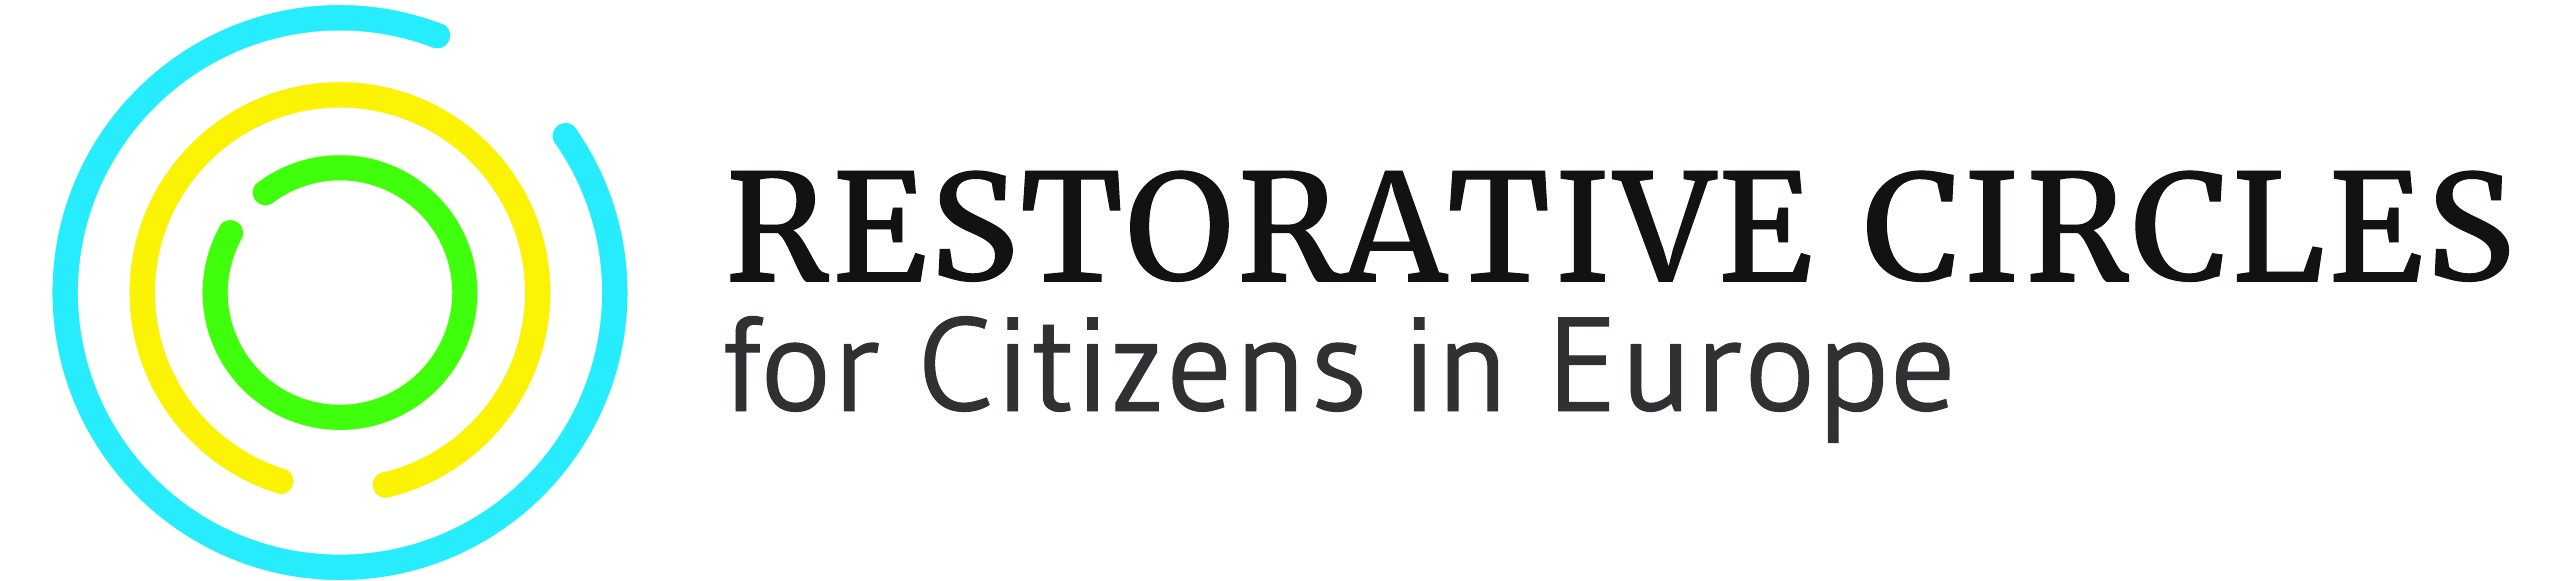 Restorative Circles for Citizens in Europe